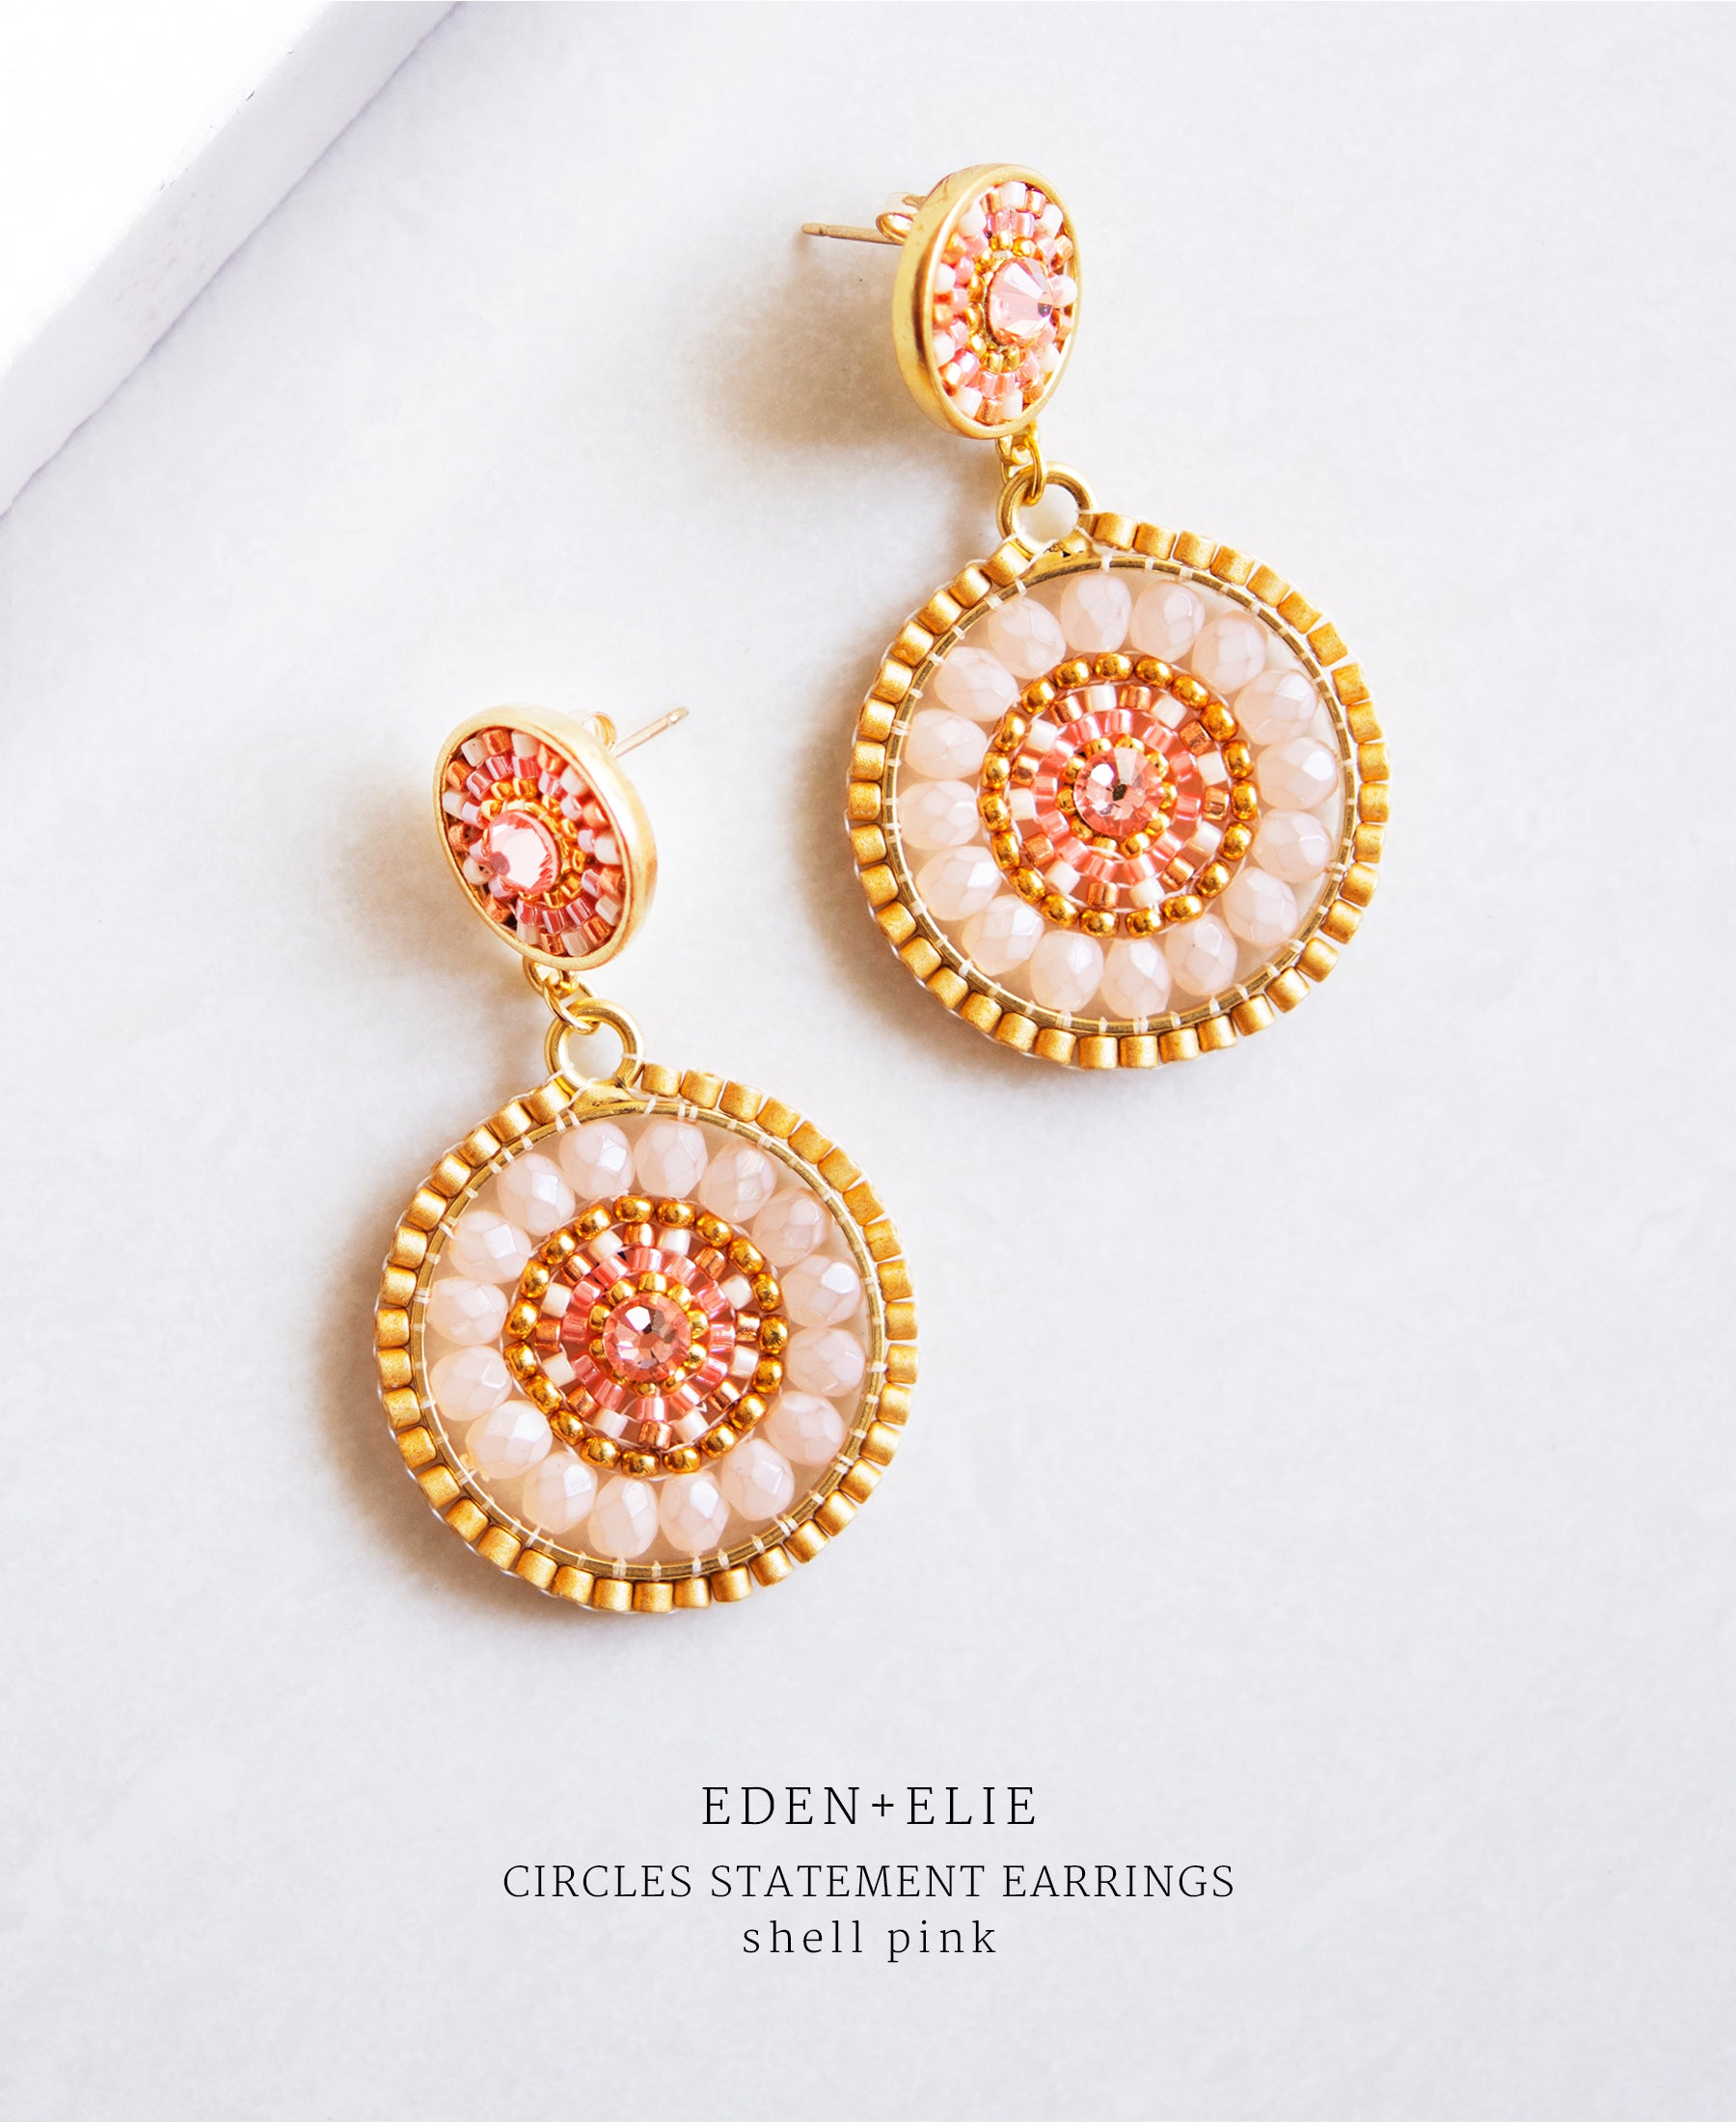 EDEN + ELIE double circle statement drop earrings - shell pink